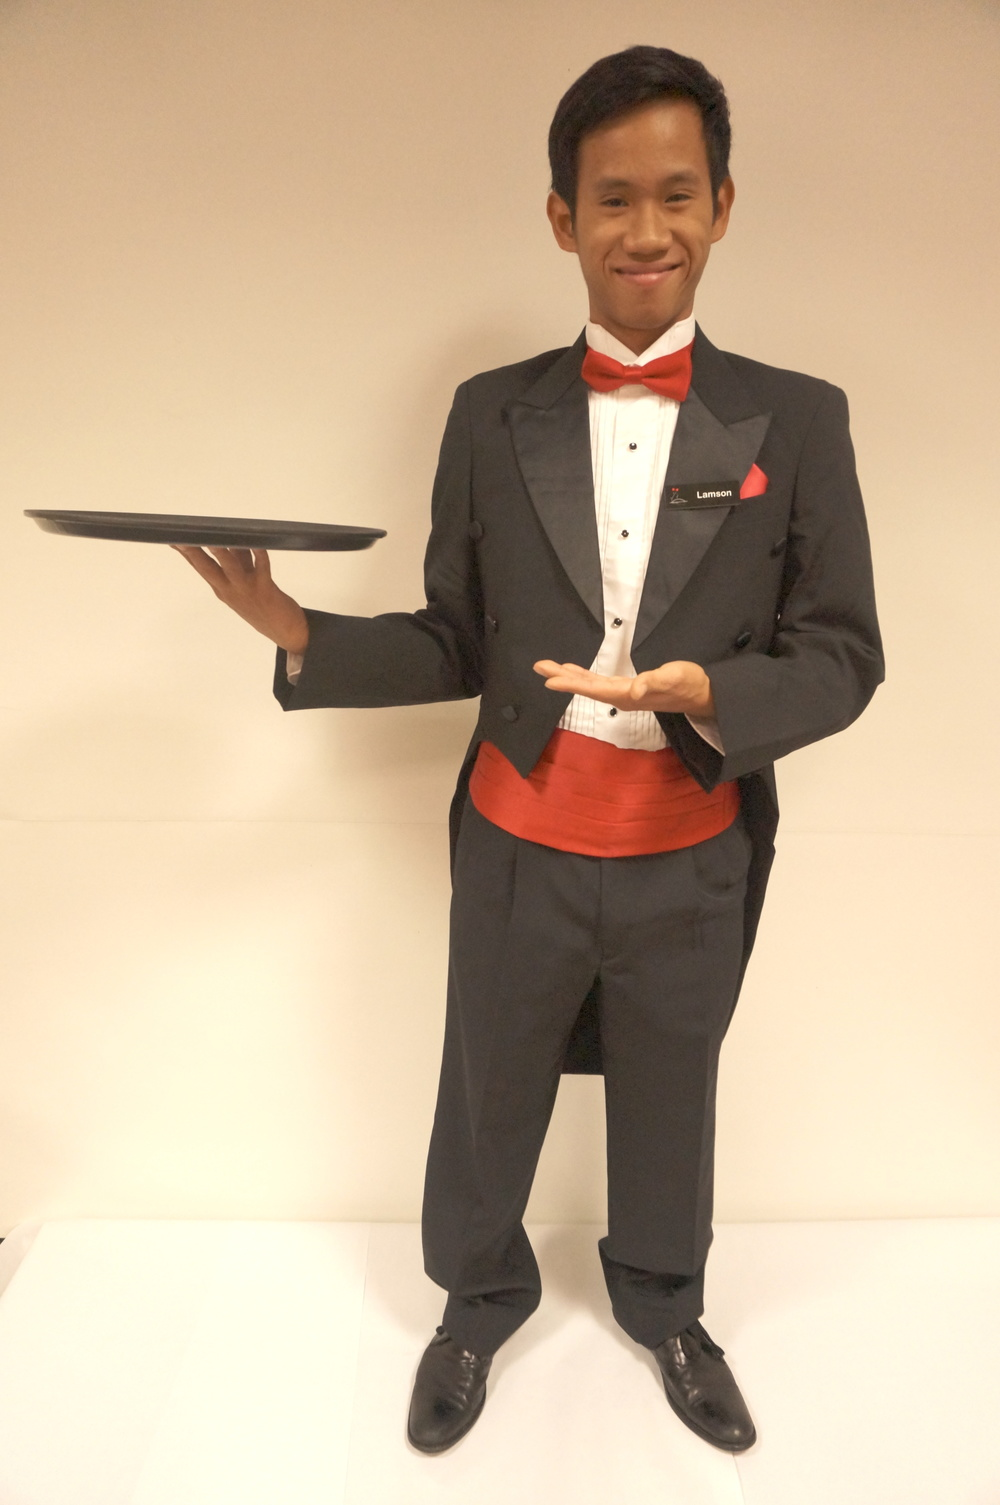 Formal Uniform: Tuxedo jacket with tails, white tuxedo shirt, red bow tie, red cumberbund, cufflinks, tuxedo buttons, and black shoes